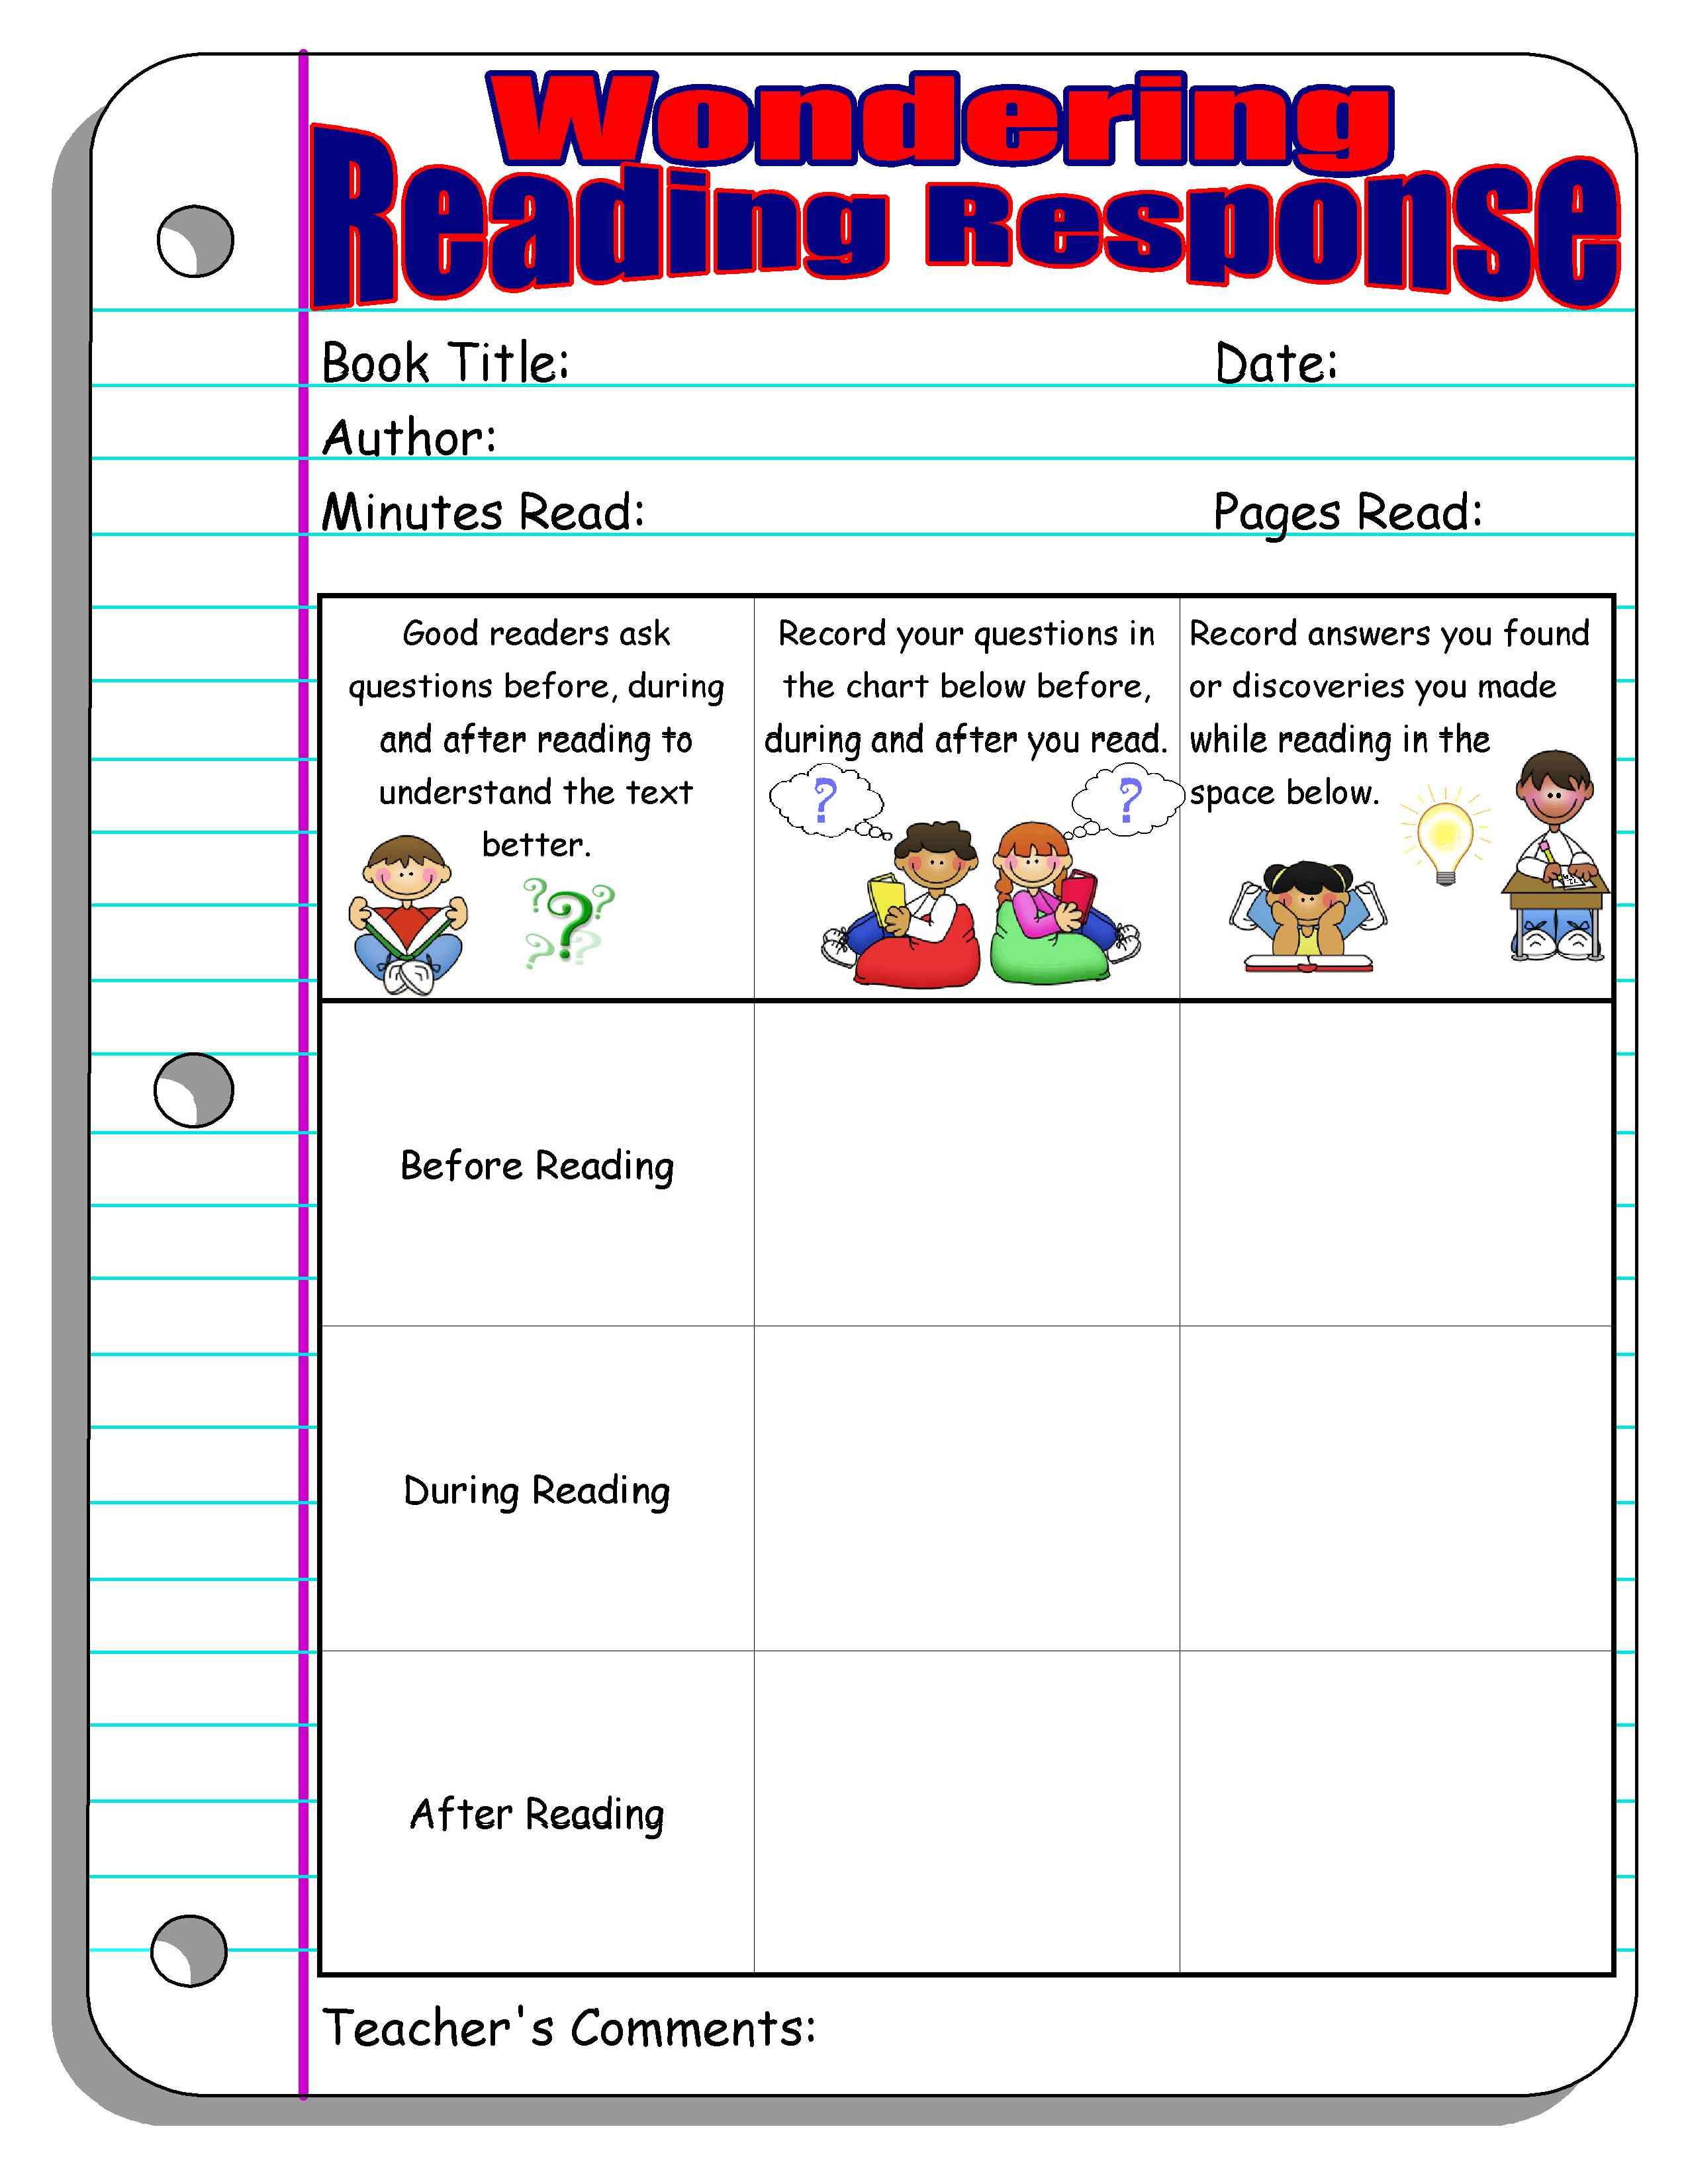 Reading Response Forms And Graphic Organizers Scholastic Com Reading Response Worksheets Reading Response Elementary Reading [ 3300 x 2550 Pixel ]